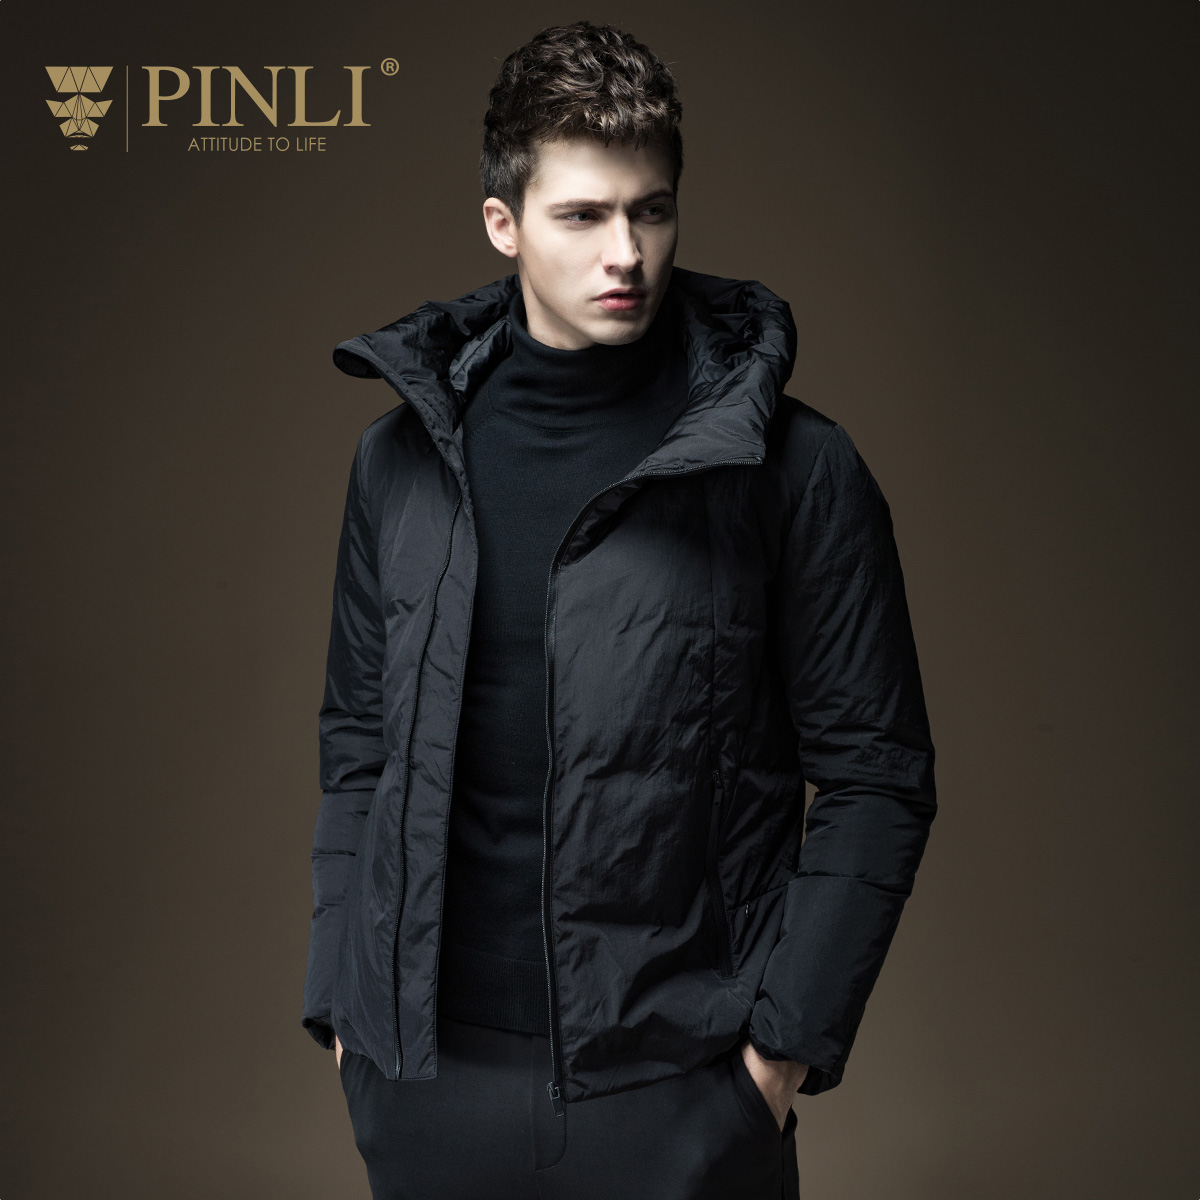 Winter Jackets Mens Special Offer Acetate Short Mandarin Collar Cotton Standard Pinli 2016 New Fall Male Jacket Warm D163508007 frank buytendijk dealing with dilemmas where business analytics fall short